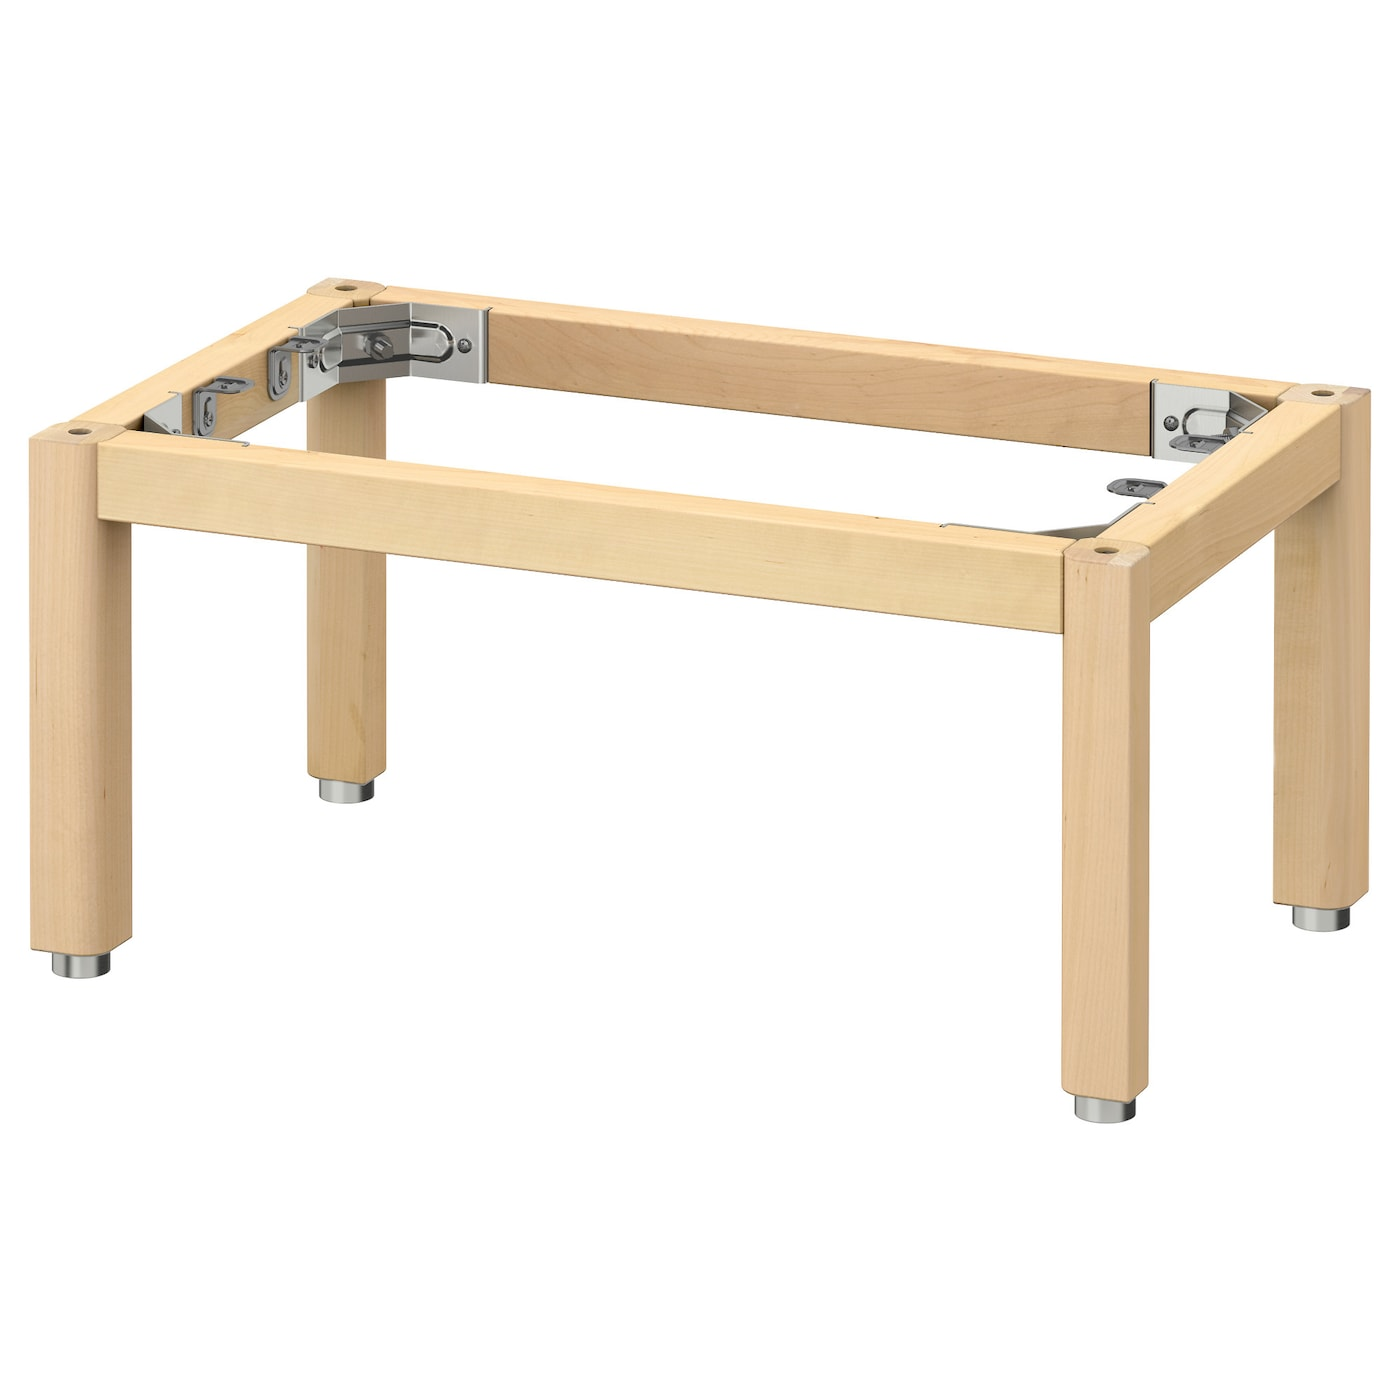 IKEA SKÄRALID leg frame 25 year guarantee. Read about the terms in the guarantee brochure.